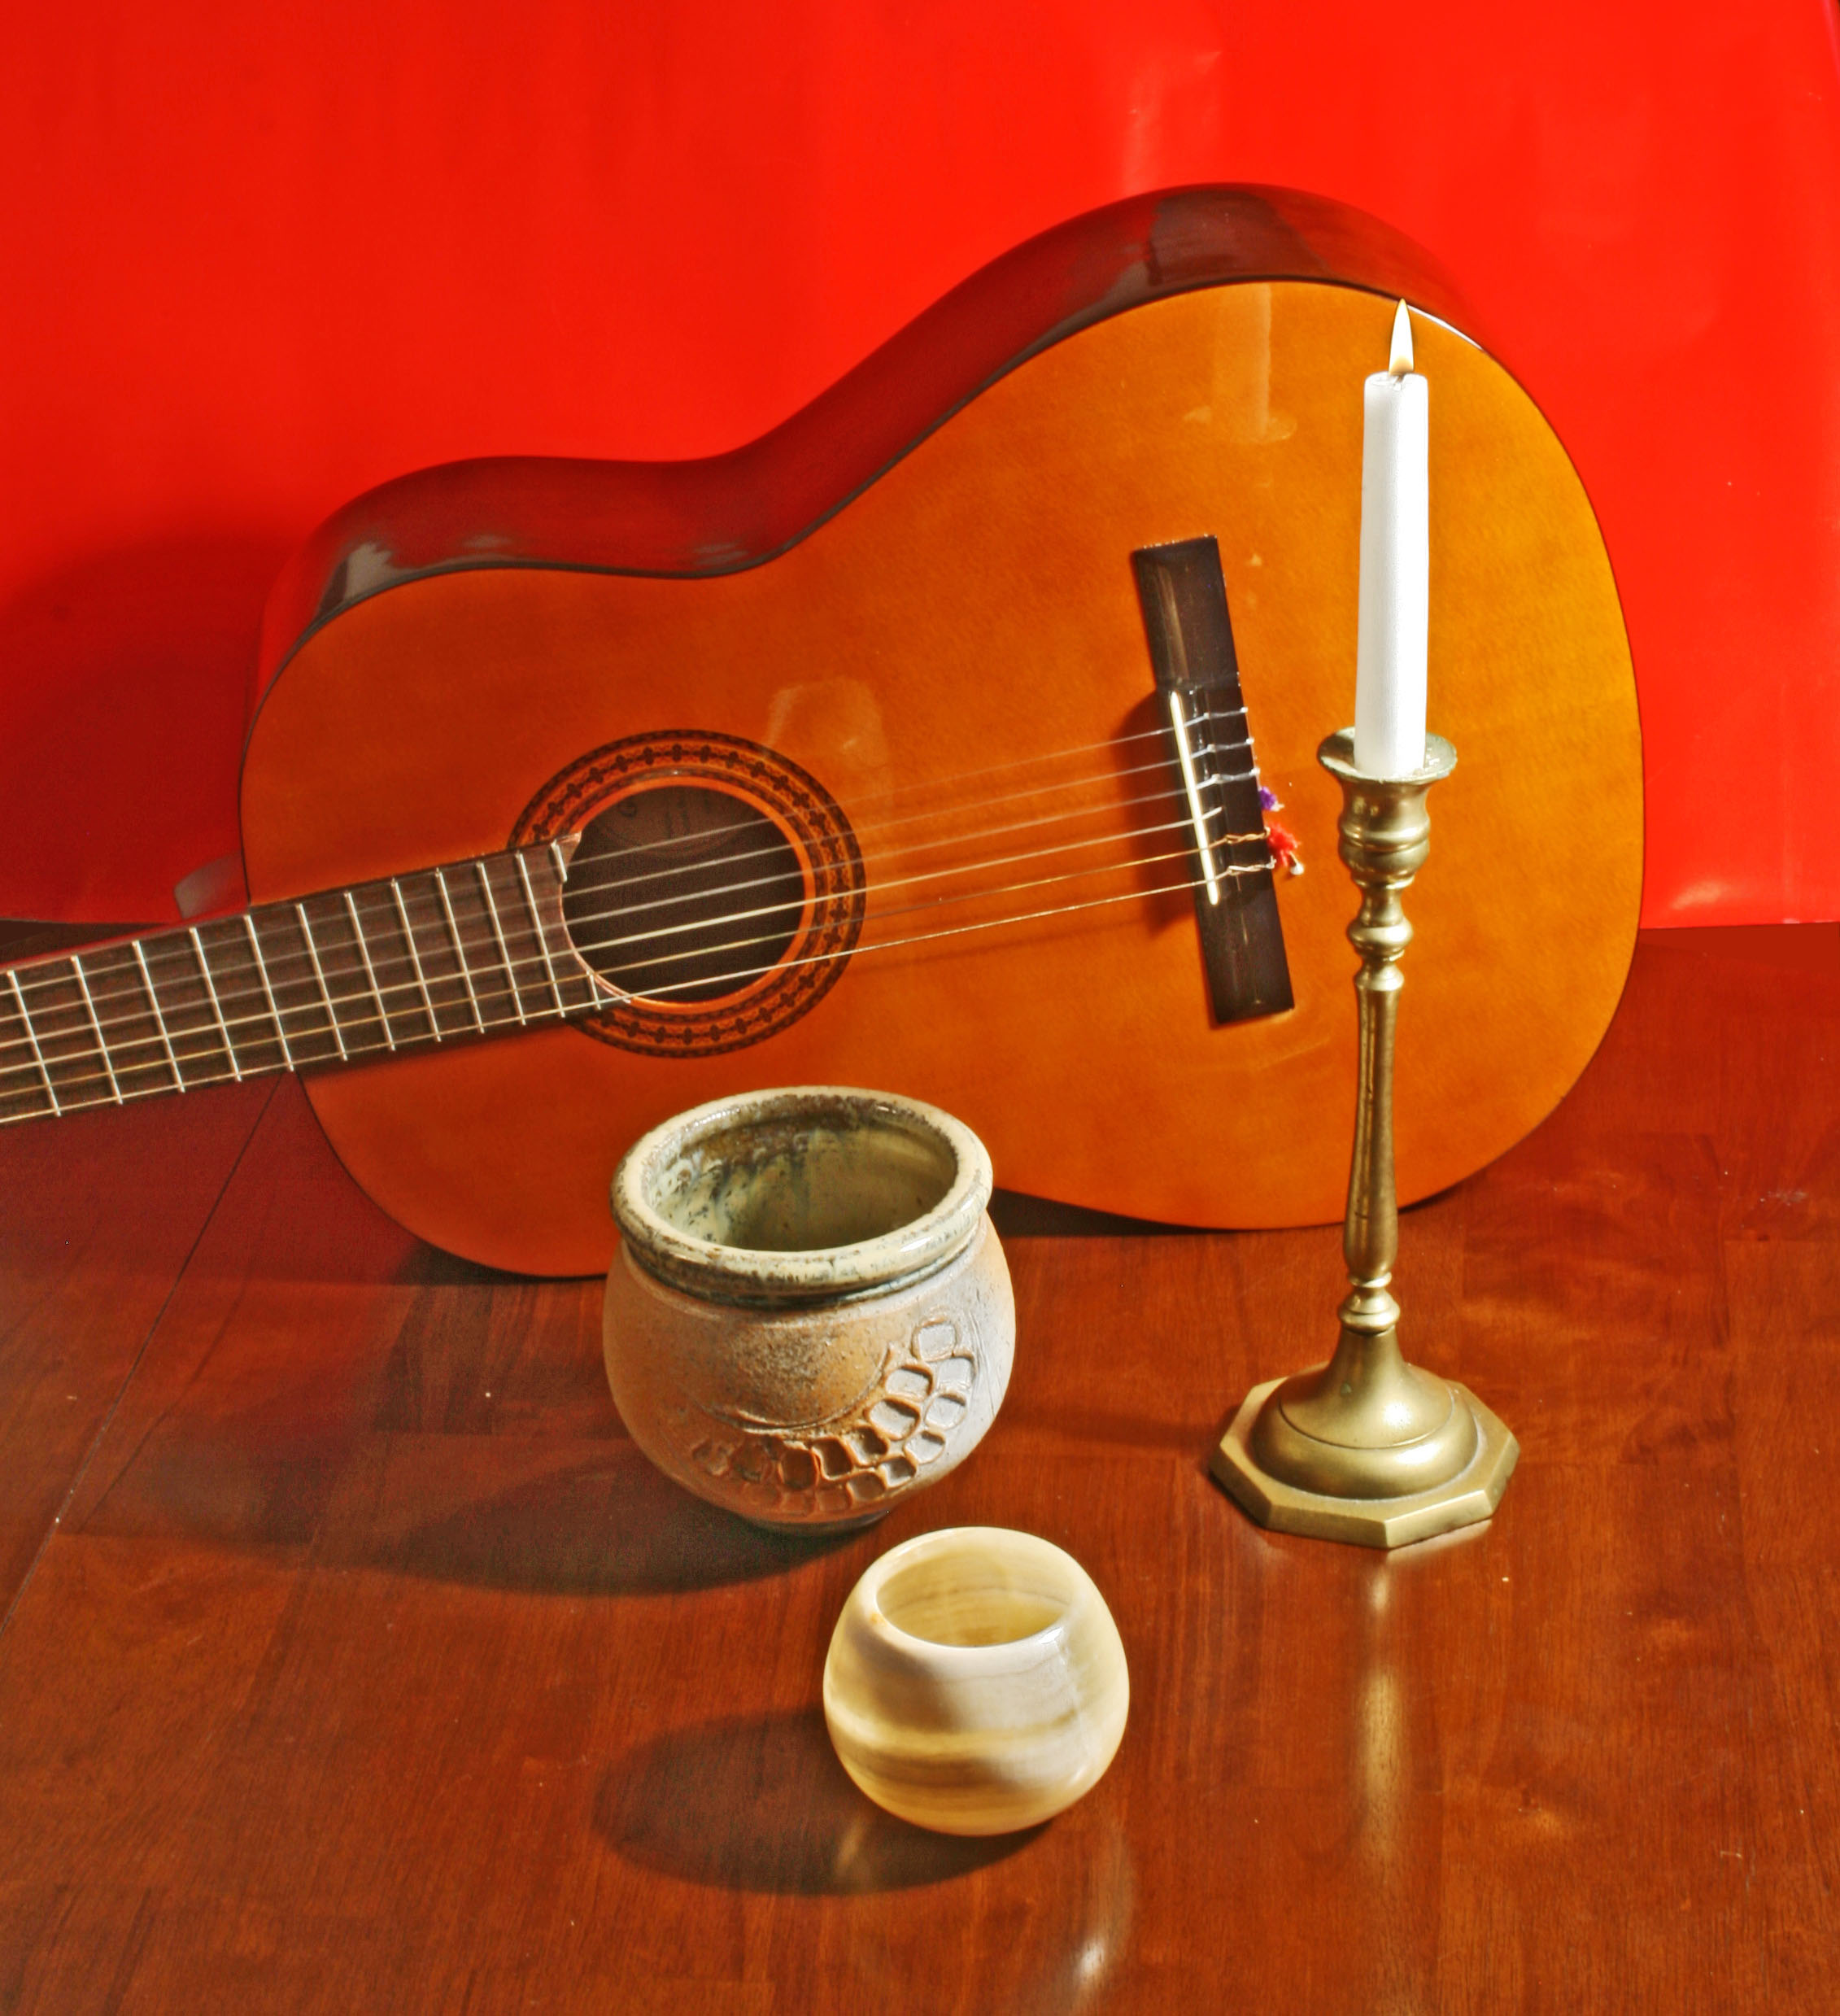 Guitar and Candle